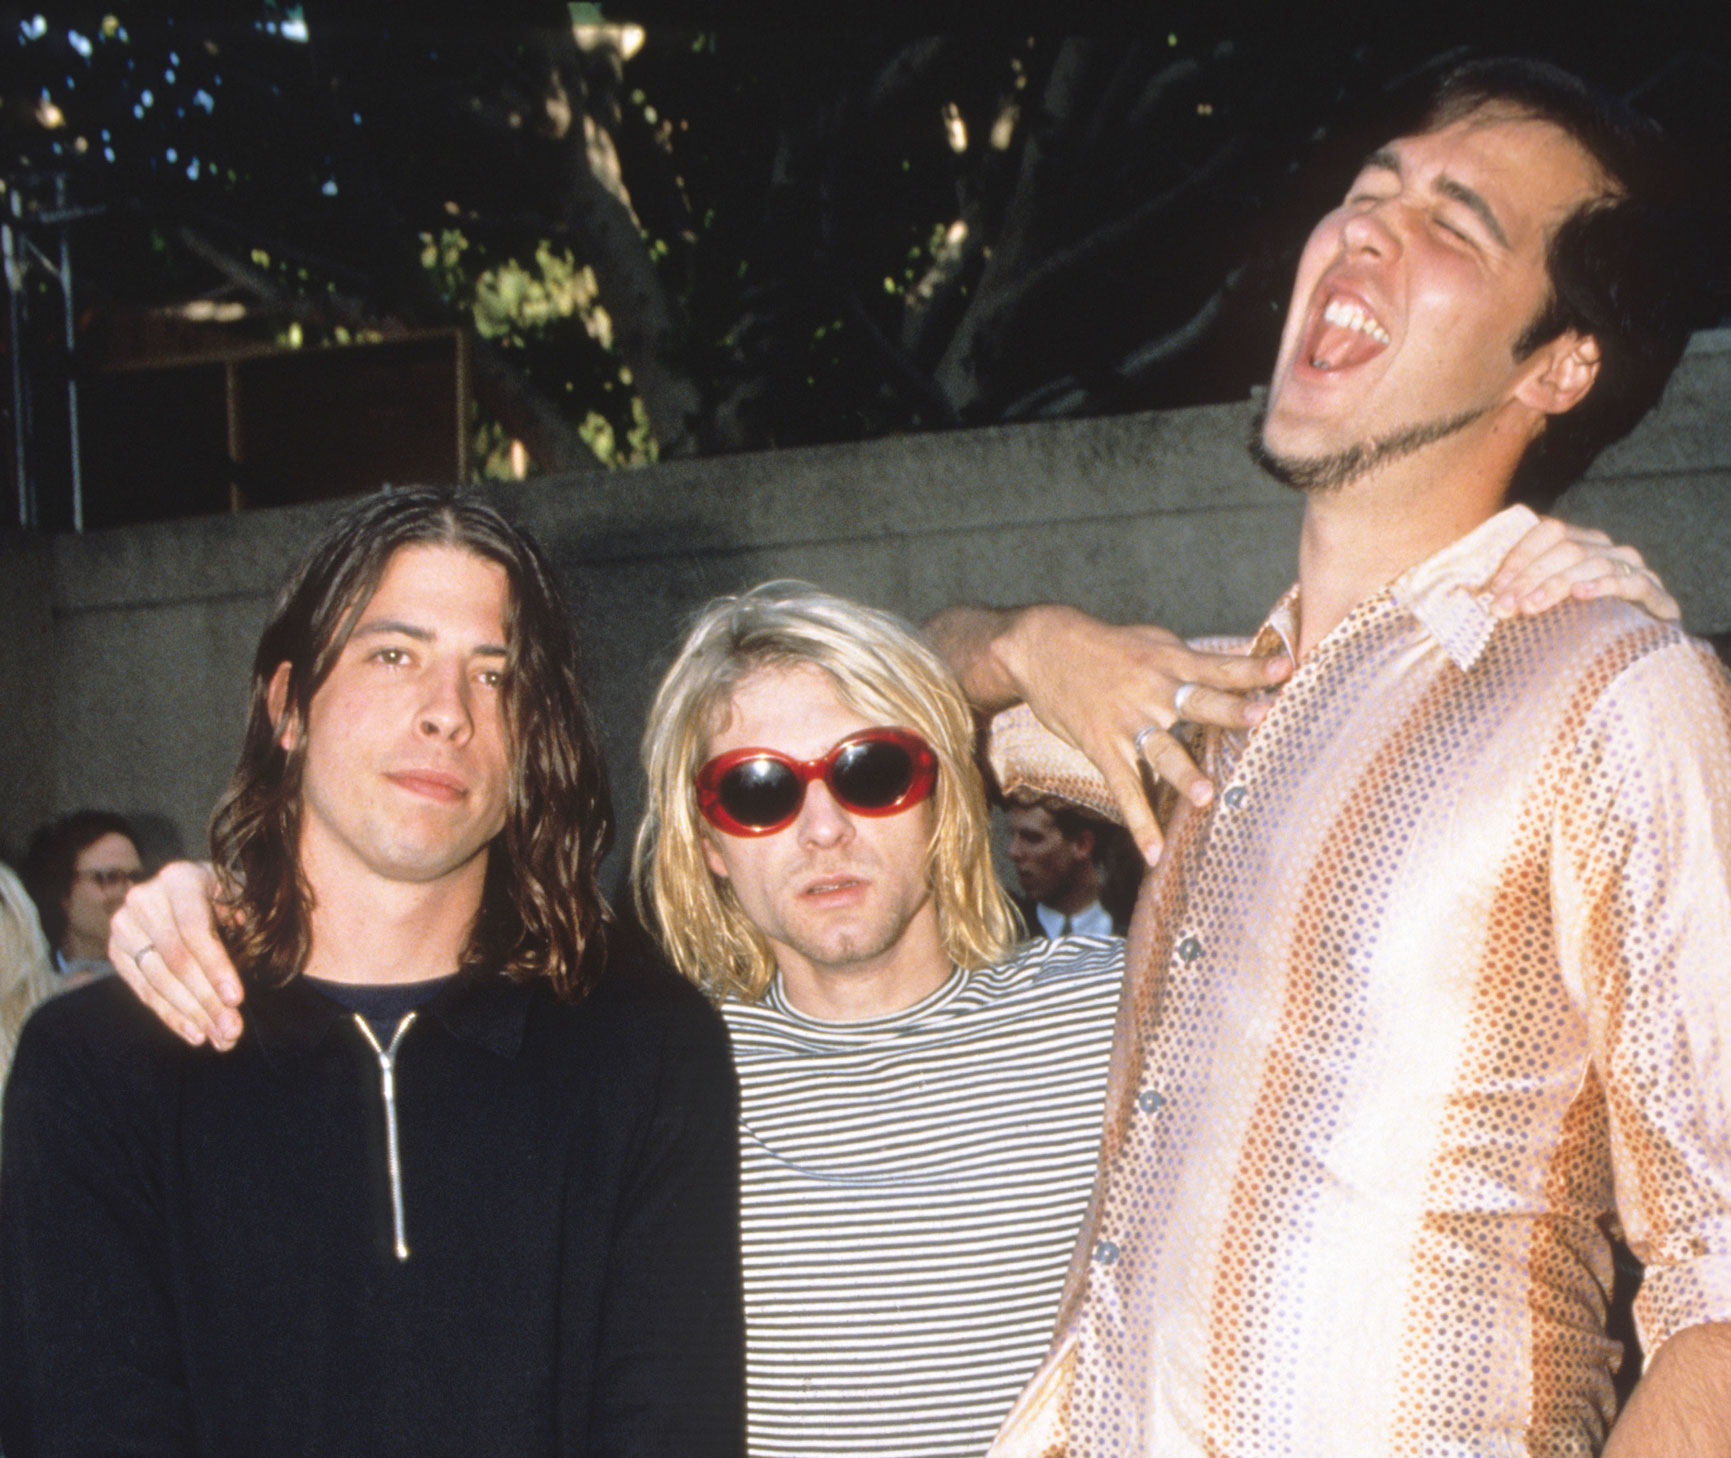 Nirvana at the 1993 MTV Video Music Awards